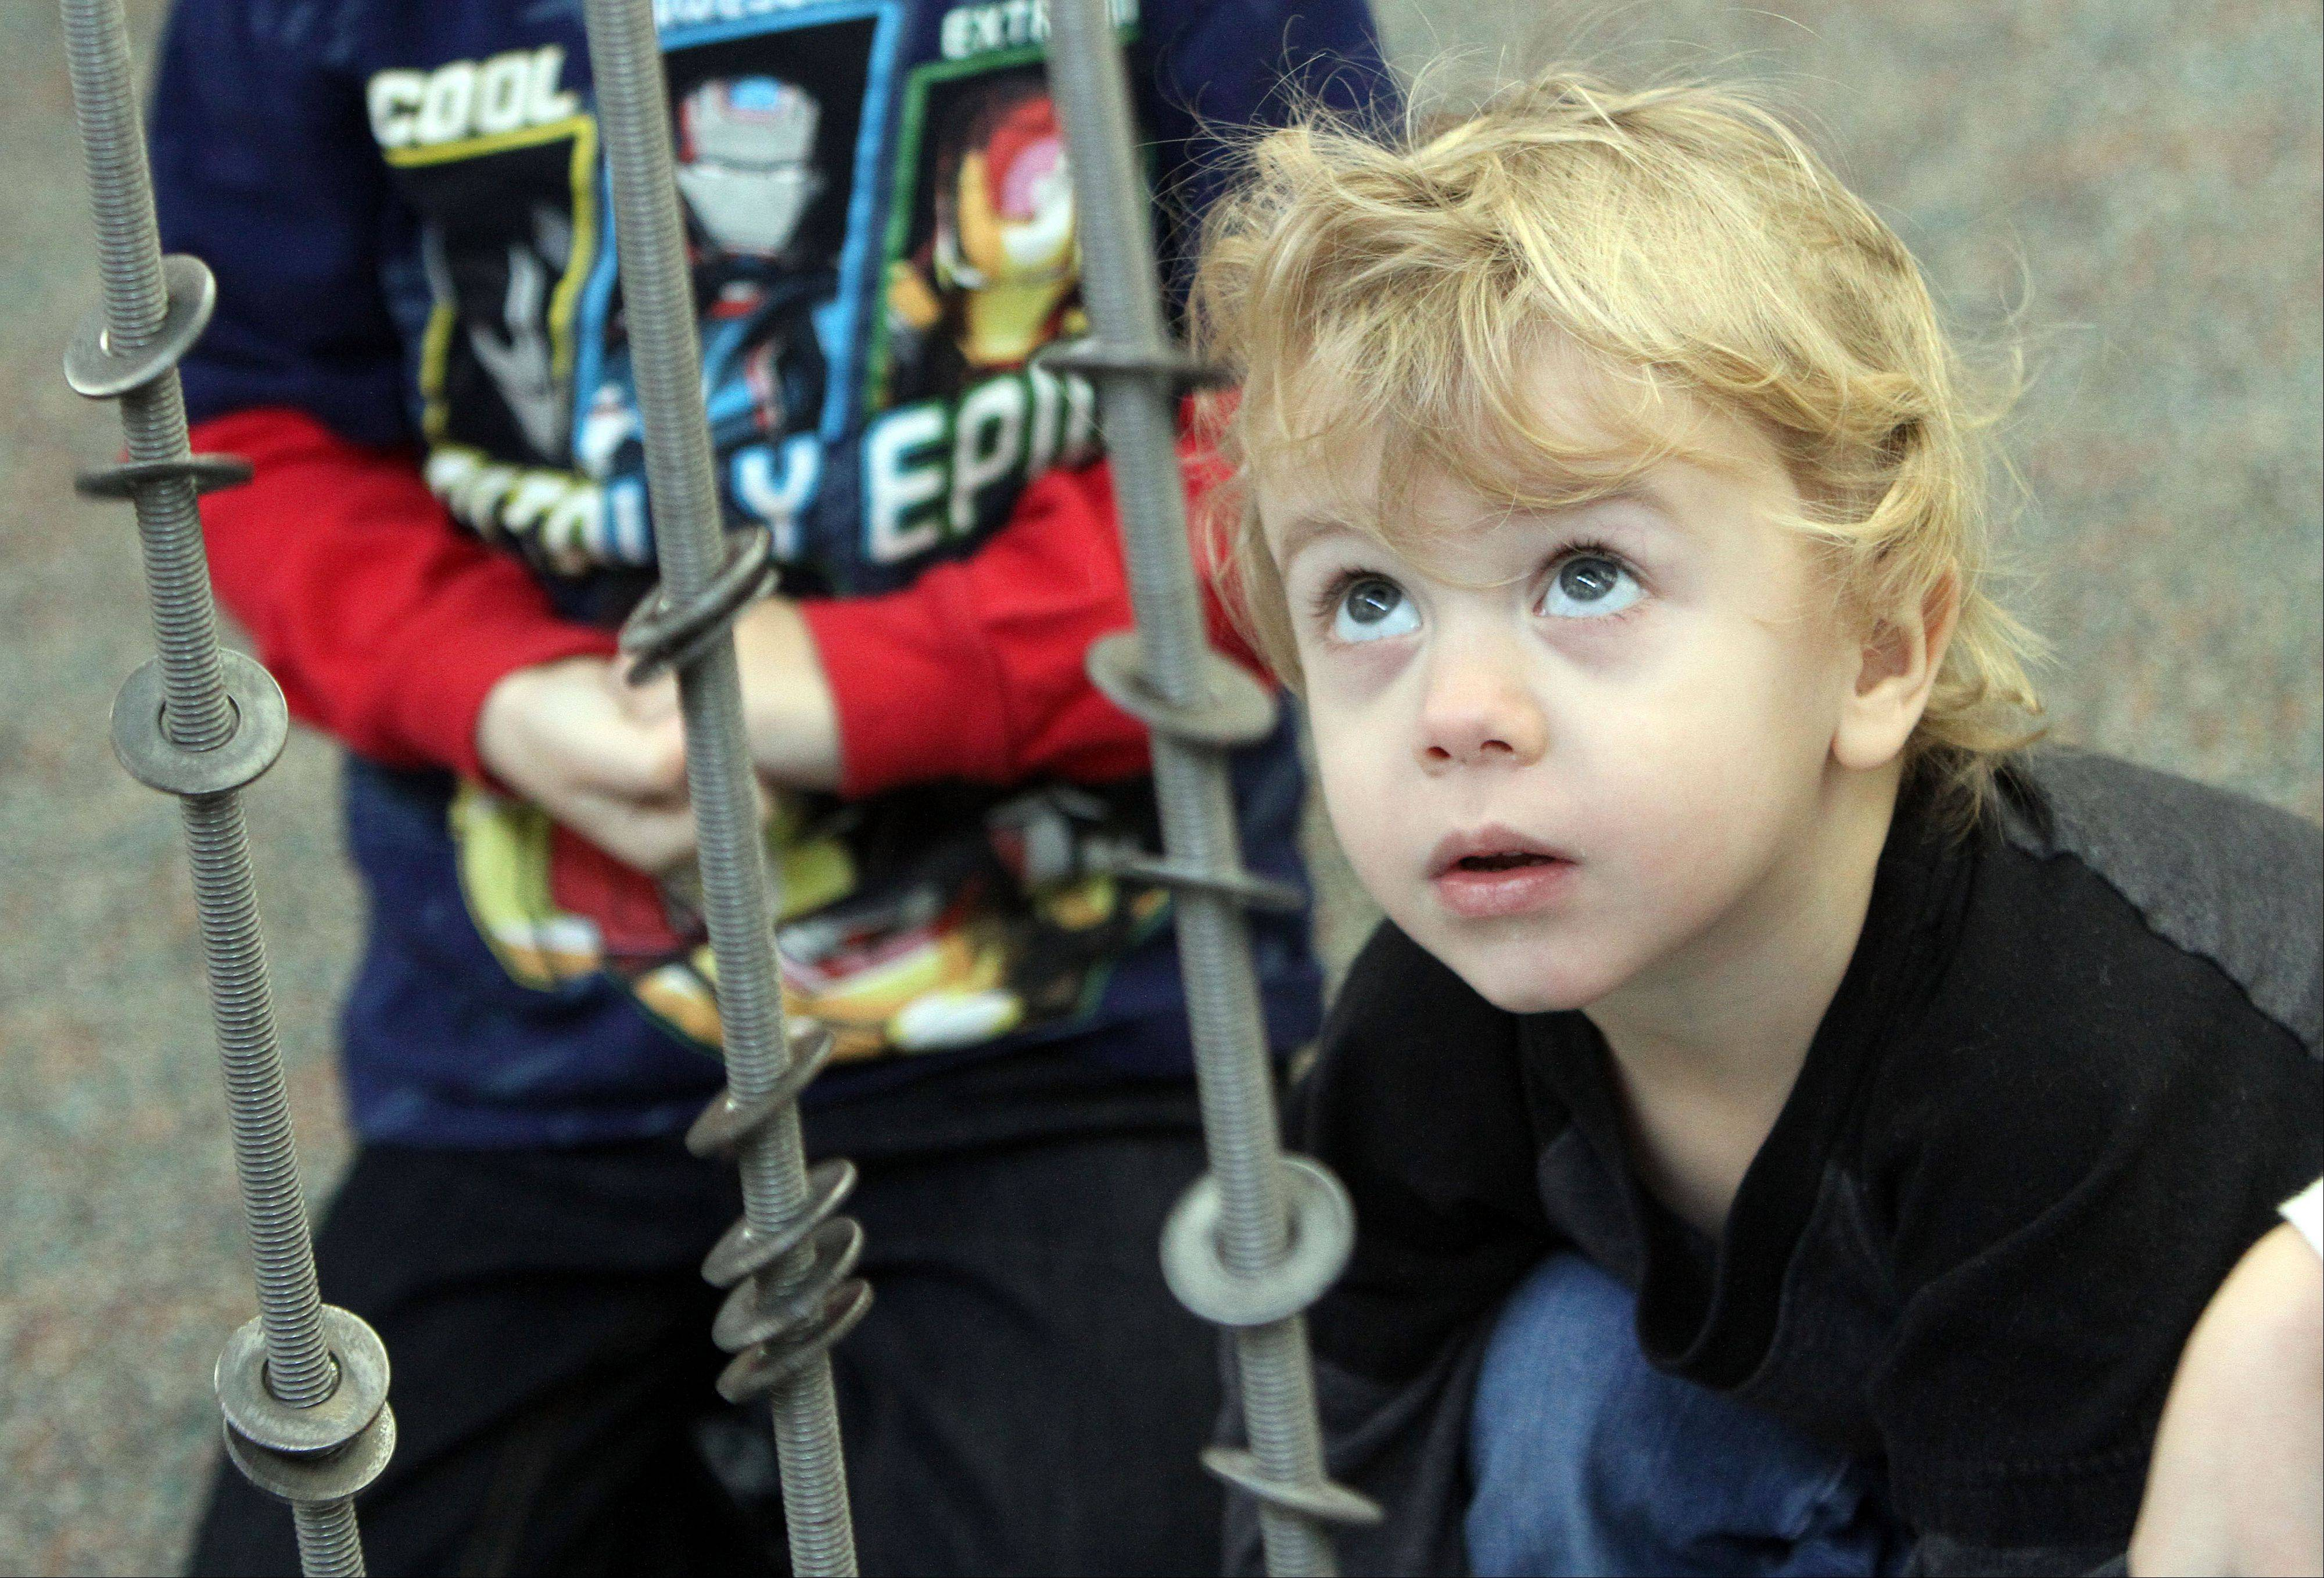 Shane Jones, 2, of Round Lake Beach, watches washers fall down a metal pipe Friday during the Busy Brains Children's Museum program at Lake Villa District Library in Lake Villa.